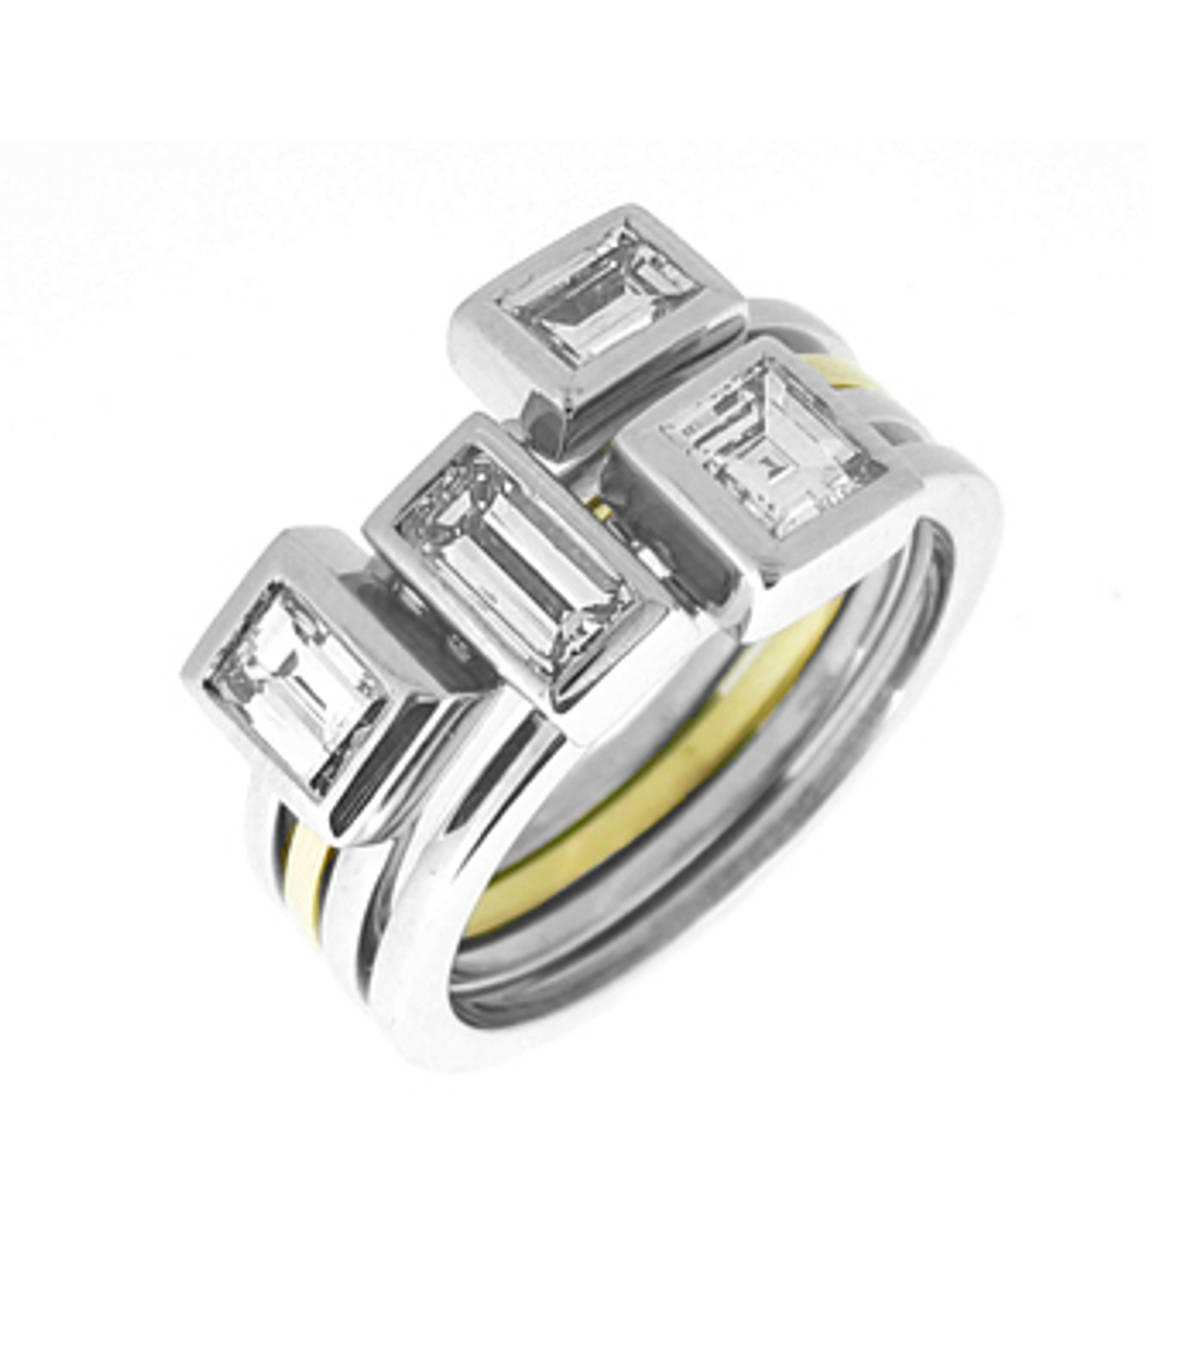 Emerald cut diamond 4 row ringPictured item: diamonds: 1.37cts set in 18k yellow/white goldAvailable in: 18k gold and platinum